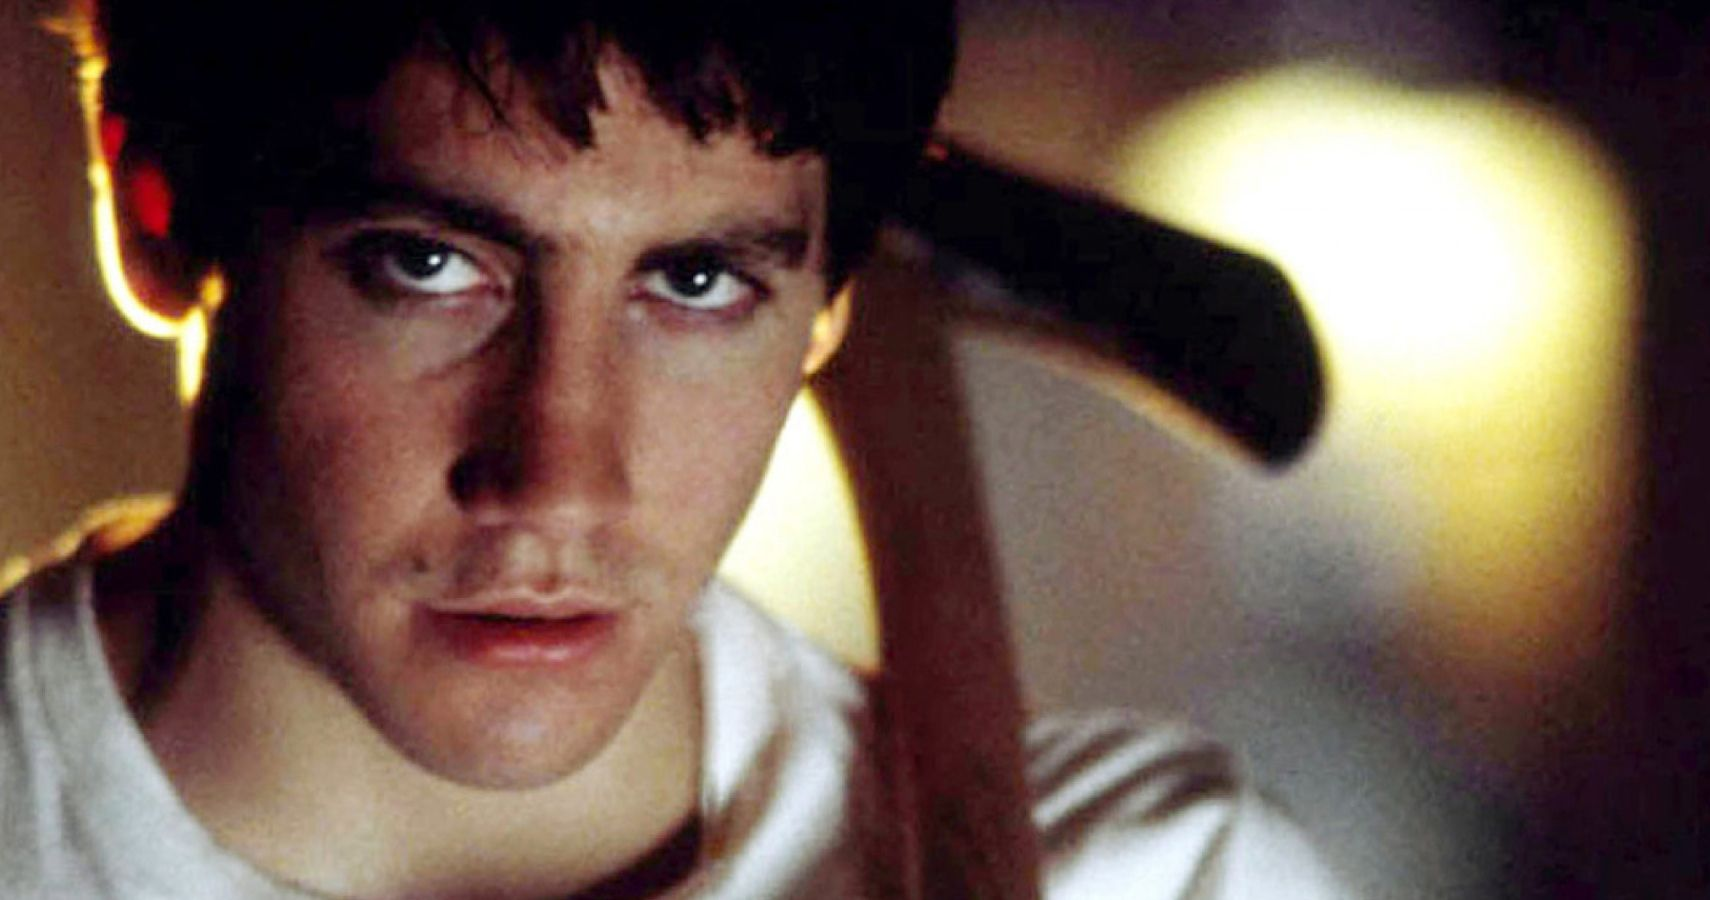 10 Behind-The-Scenes Facts About Jake Gyllenhaal's Cult Classic Donnie Darko